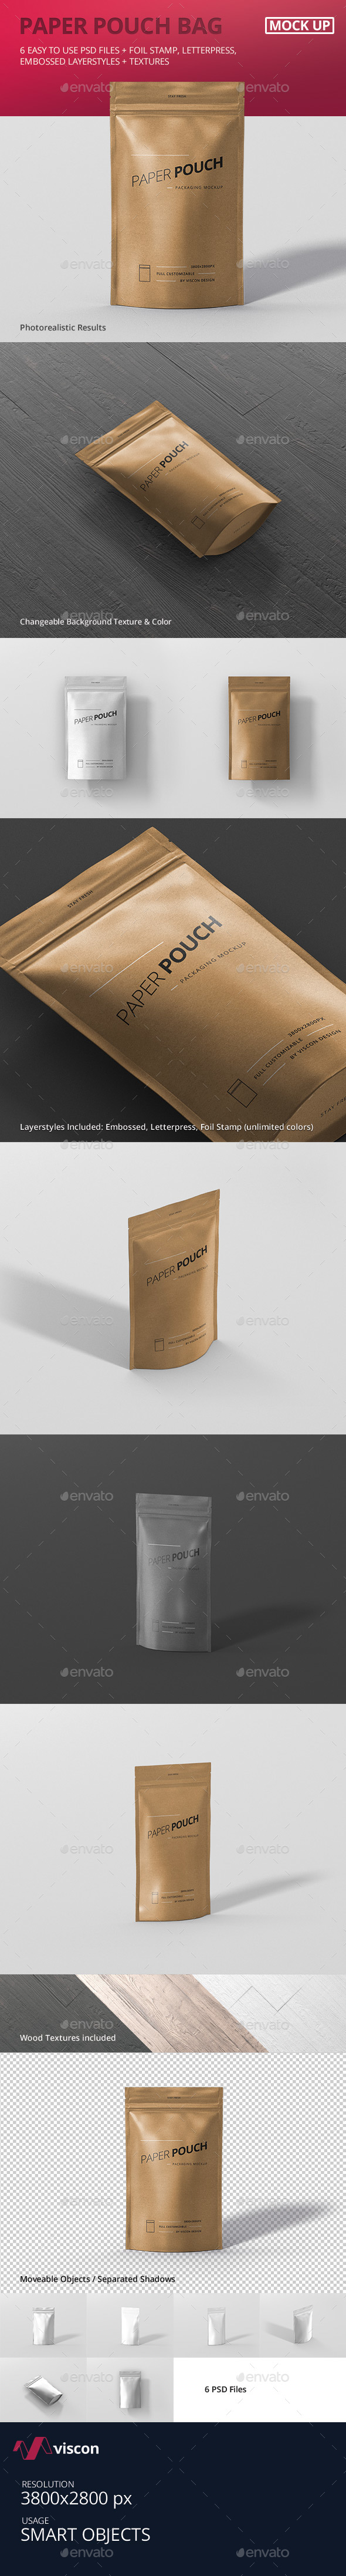 Paper Pouch Bag Mockup - Food and Drink Packaging